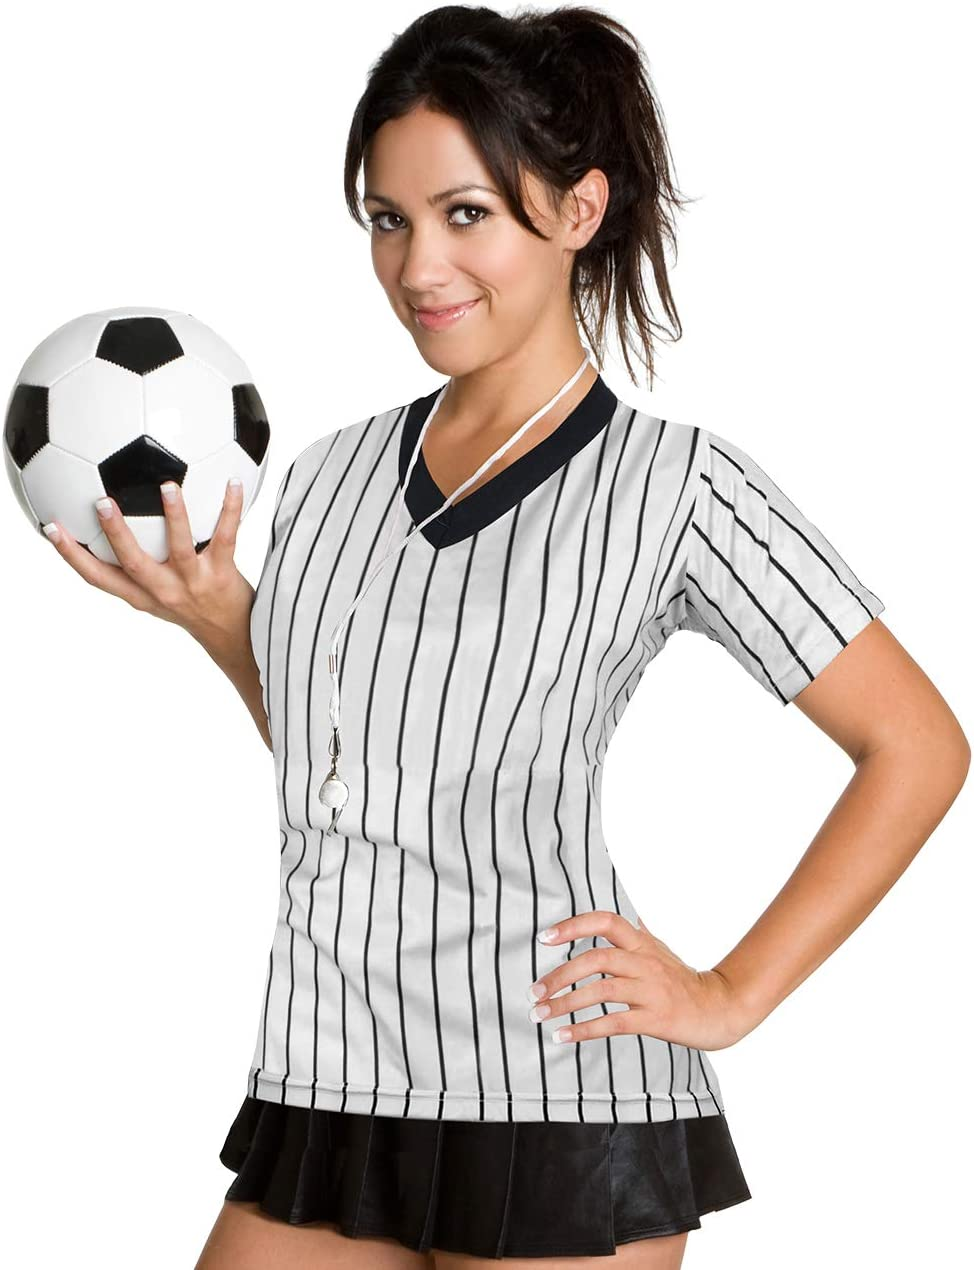 ChinFun Womens Official Black Pinstripe Referee Shirt Classic Umpire Jersey Short Sleeve V-Neck Fitted Ref Jersey Tee Shirts Light Grey